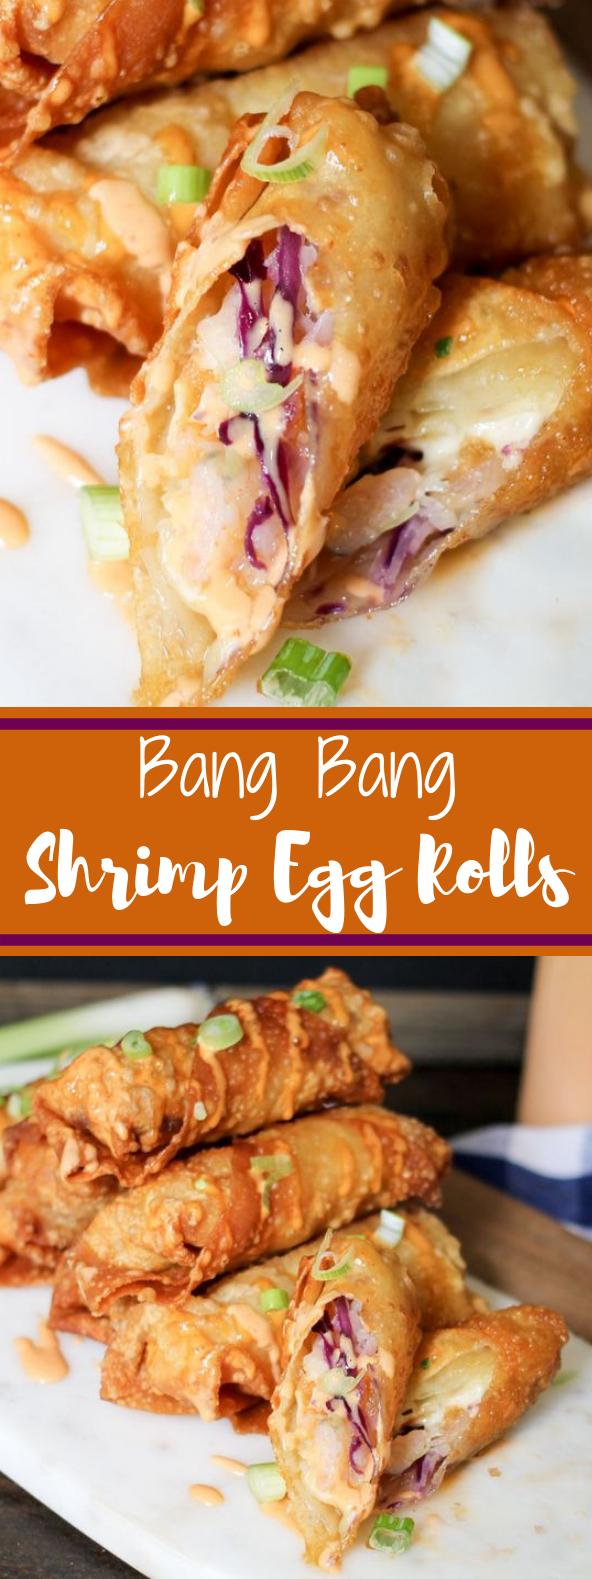 Bang Bang Shrimp Egg Rolls #appetizer #shrimp